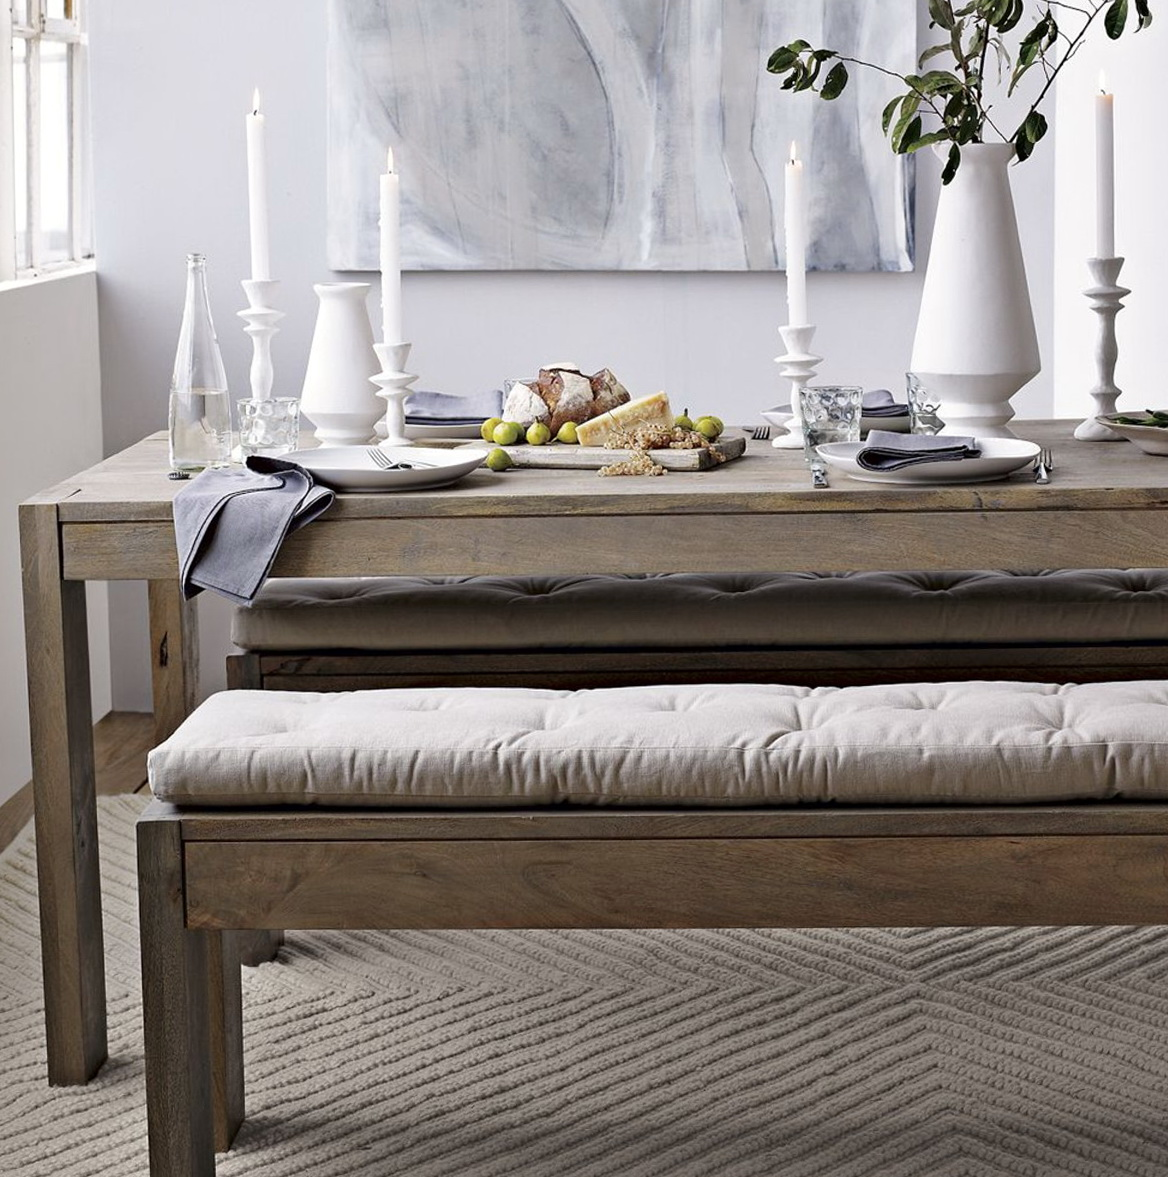 Tufted Dining Bench Cushion Home Design Ideas